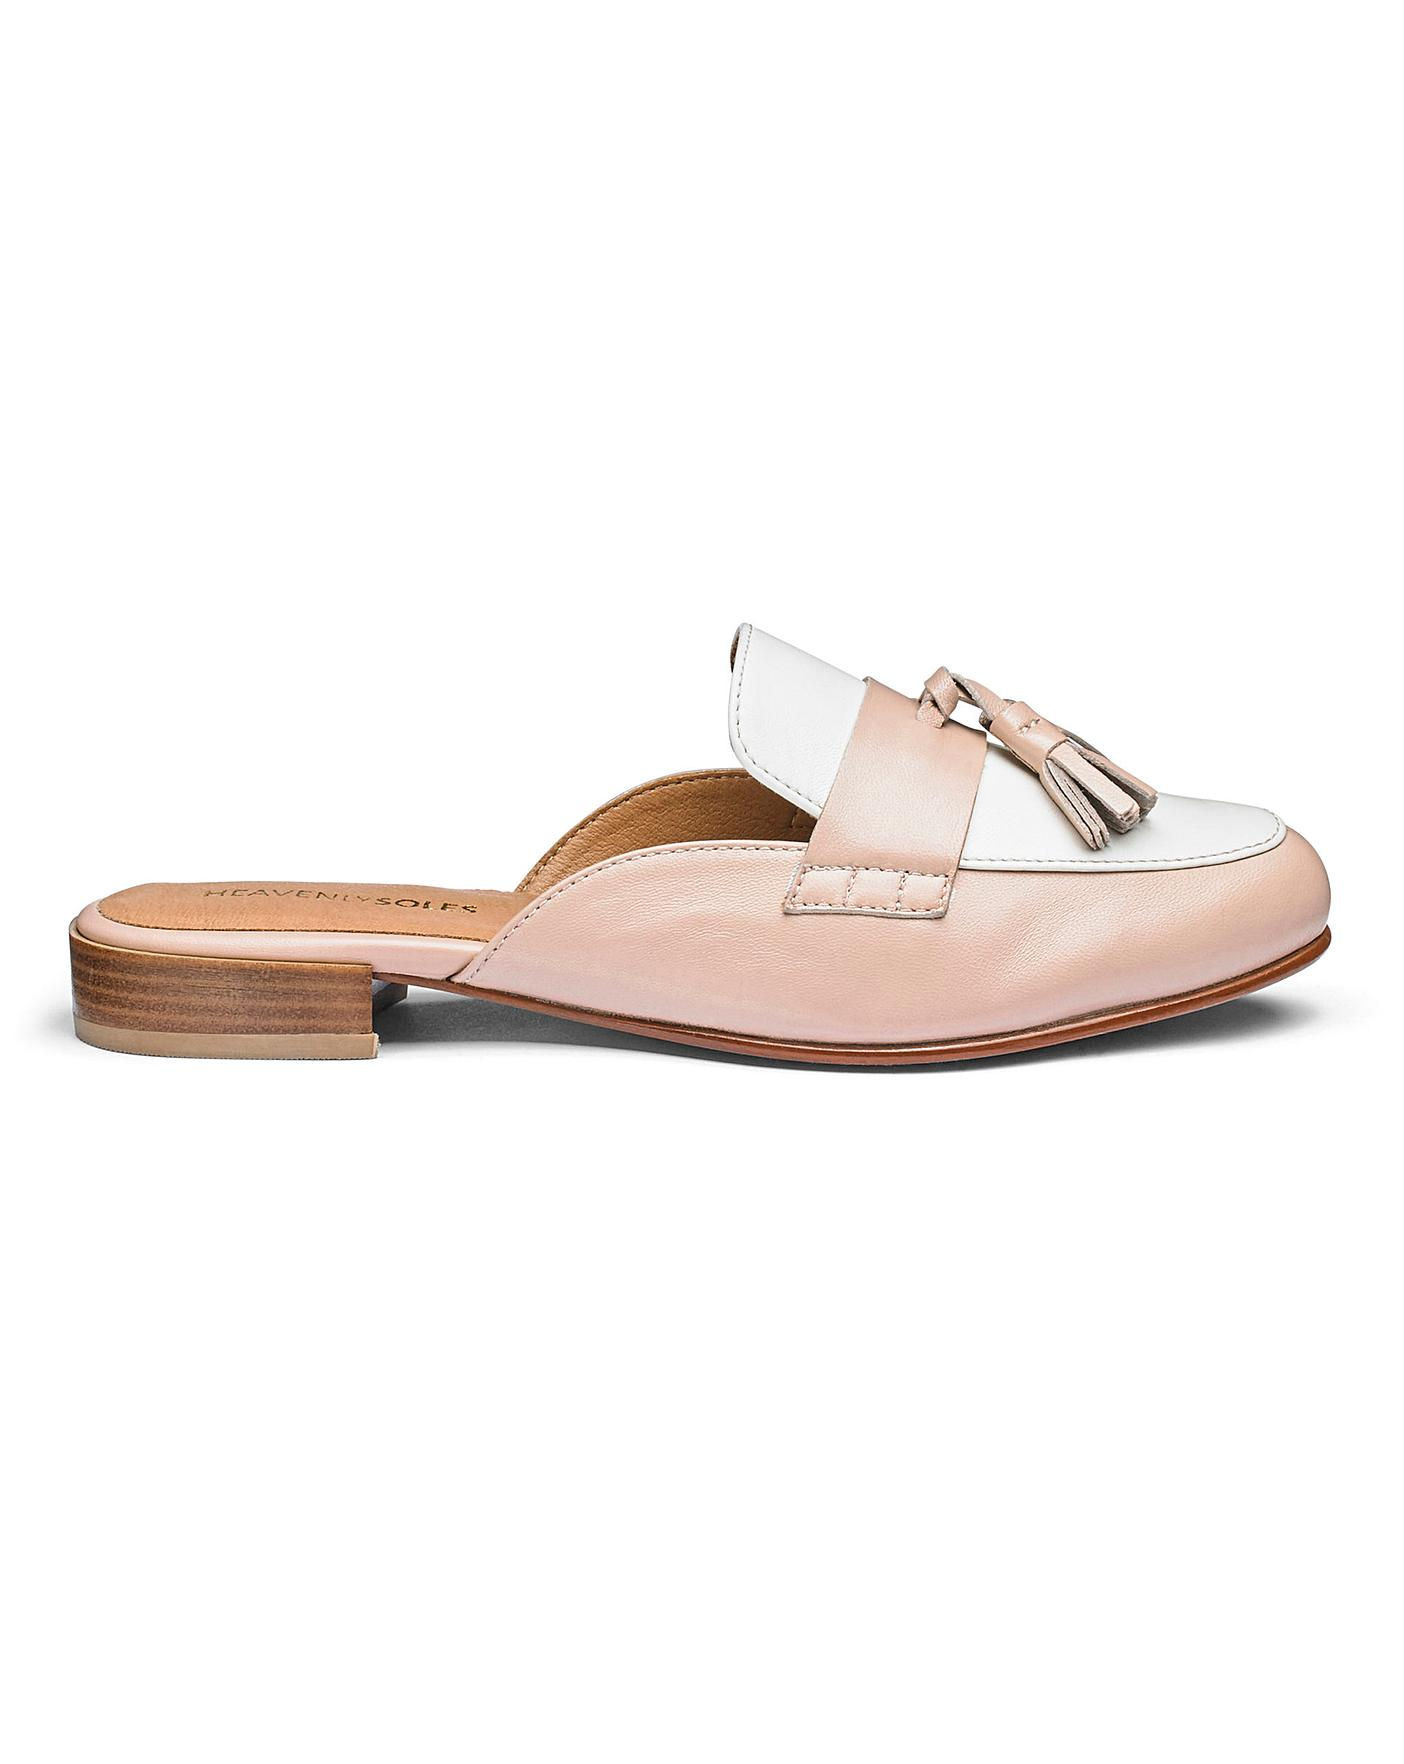 Womens Heavenly Soles Tassel Shoes Simply Be